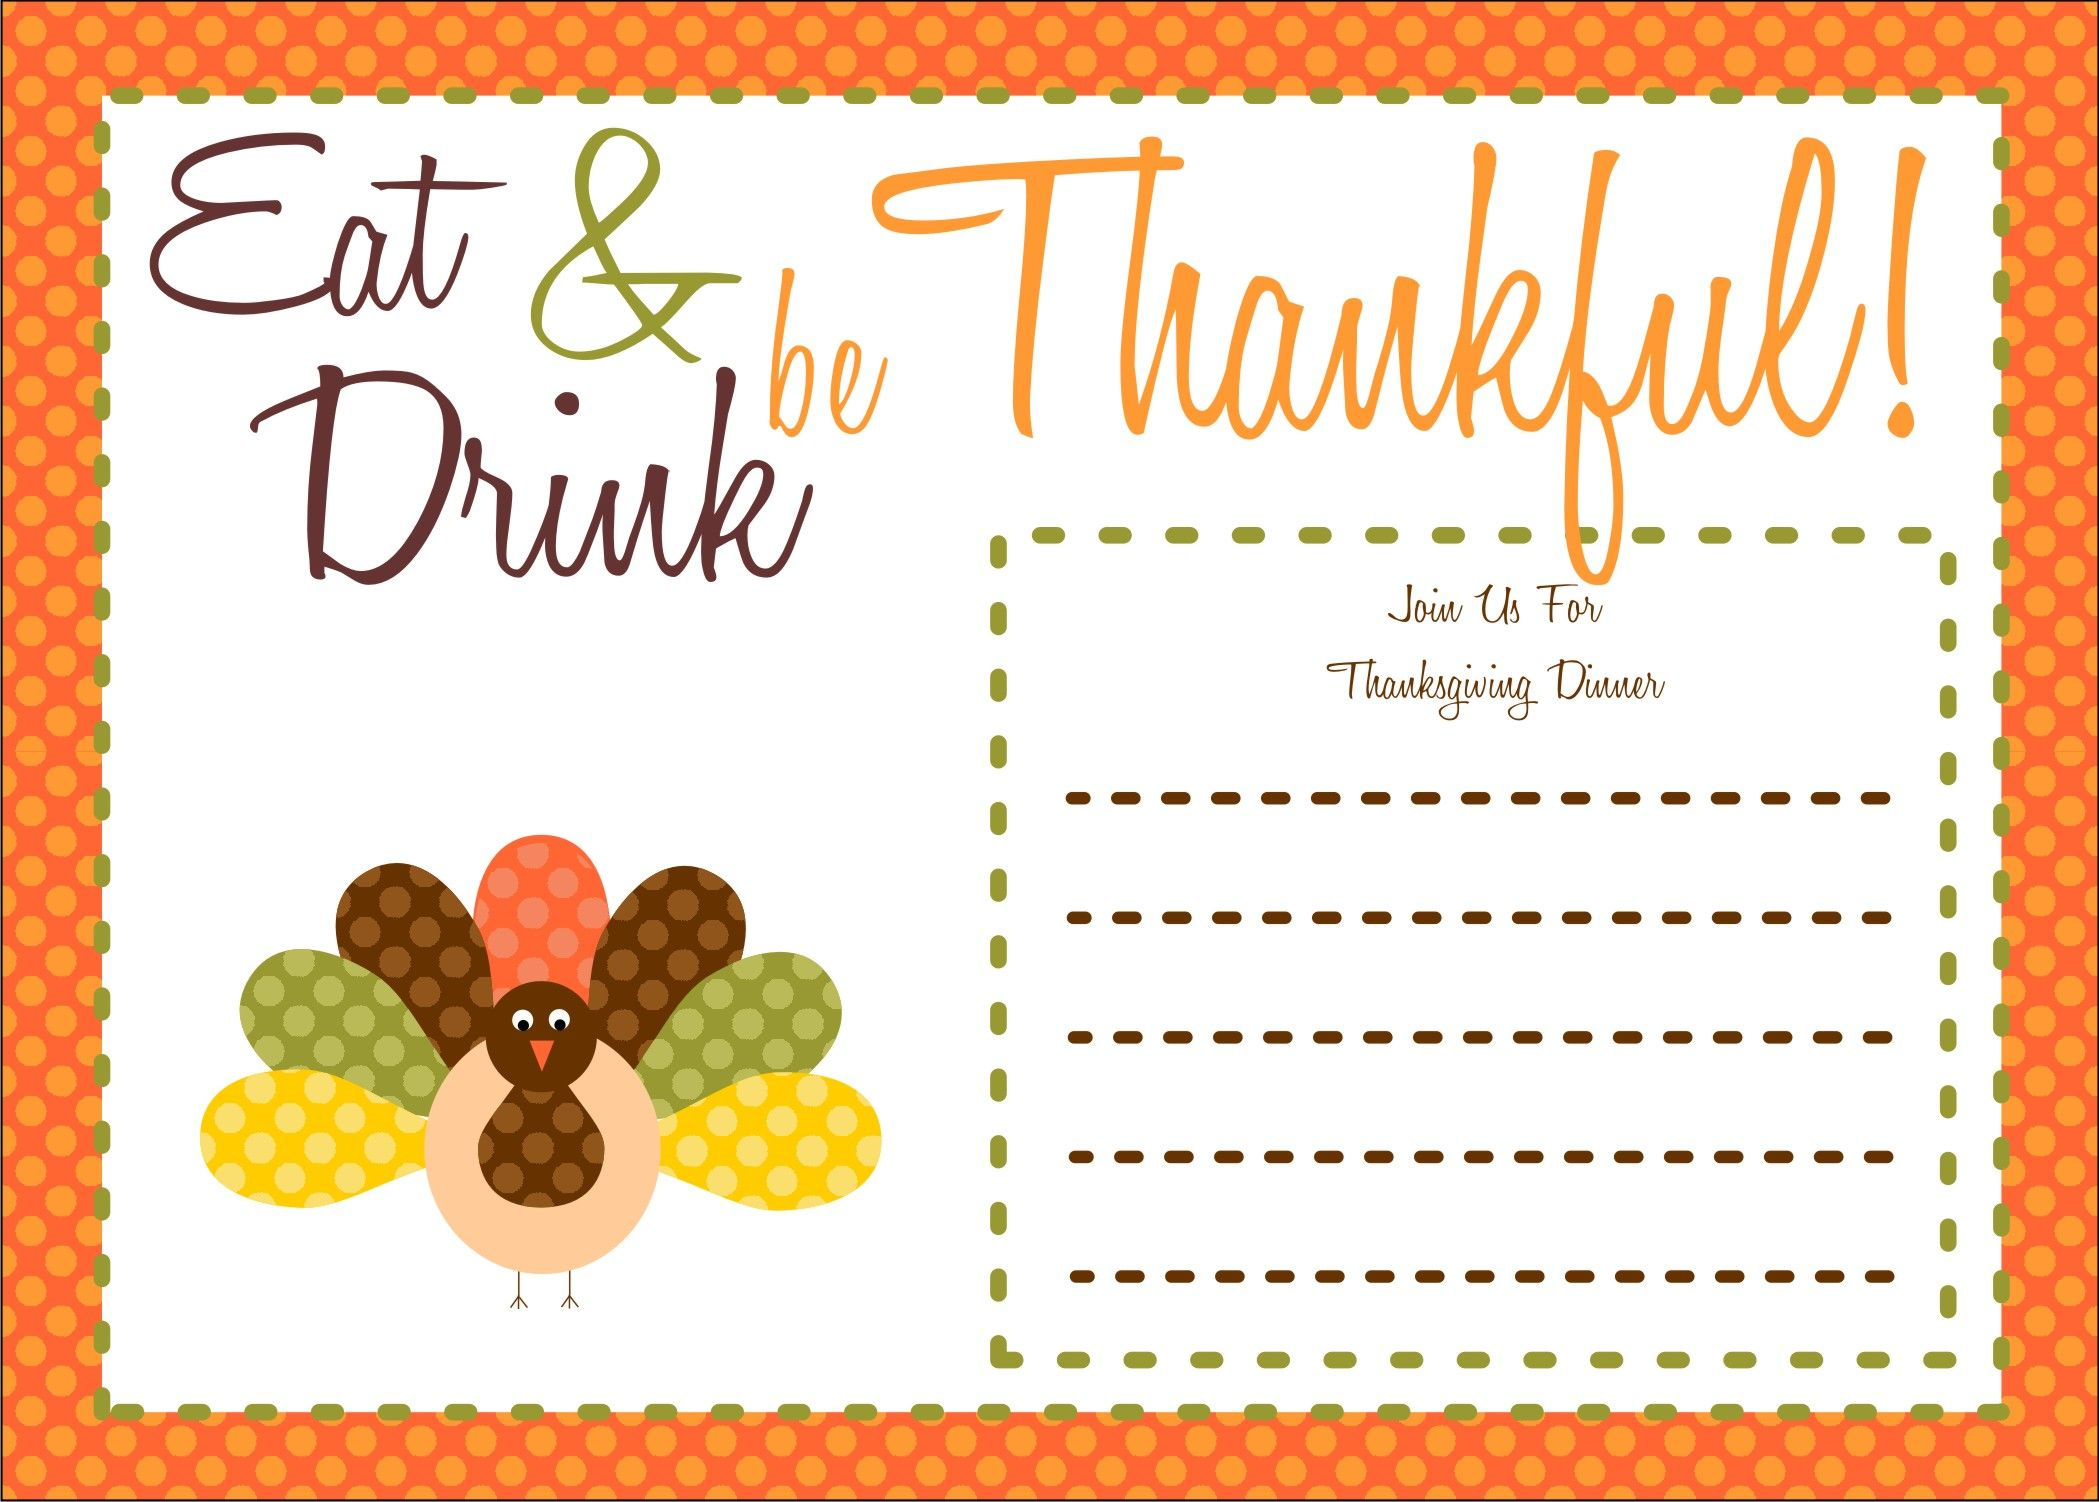 Free Thanksgiving Printables From The Party Bakery   Free Printables - Free Printable Thanksgiving Dinner Invitation Templates